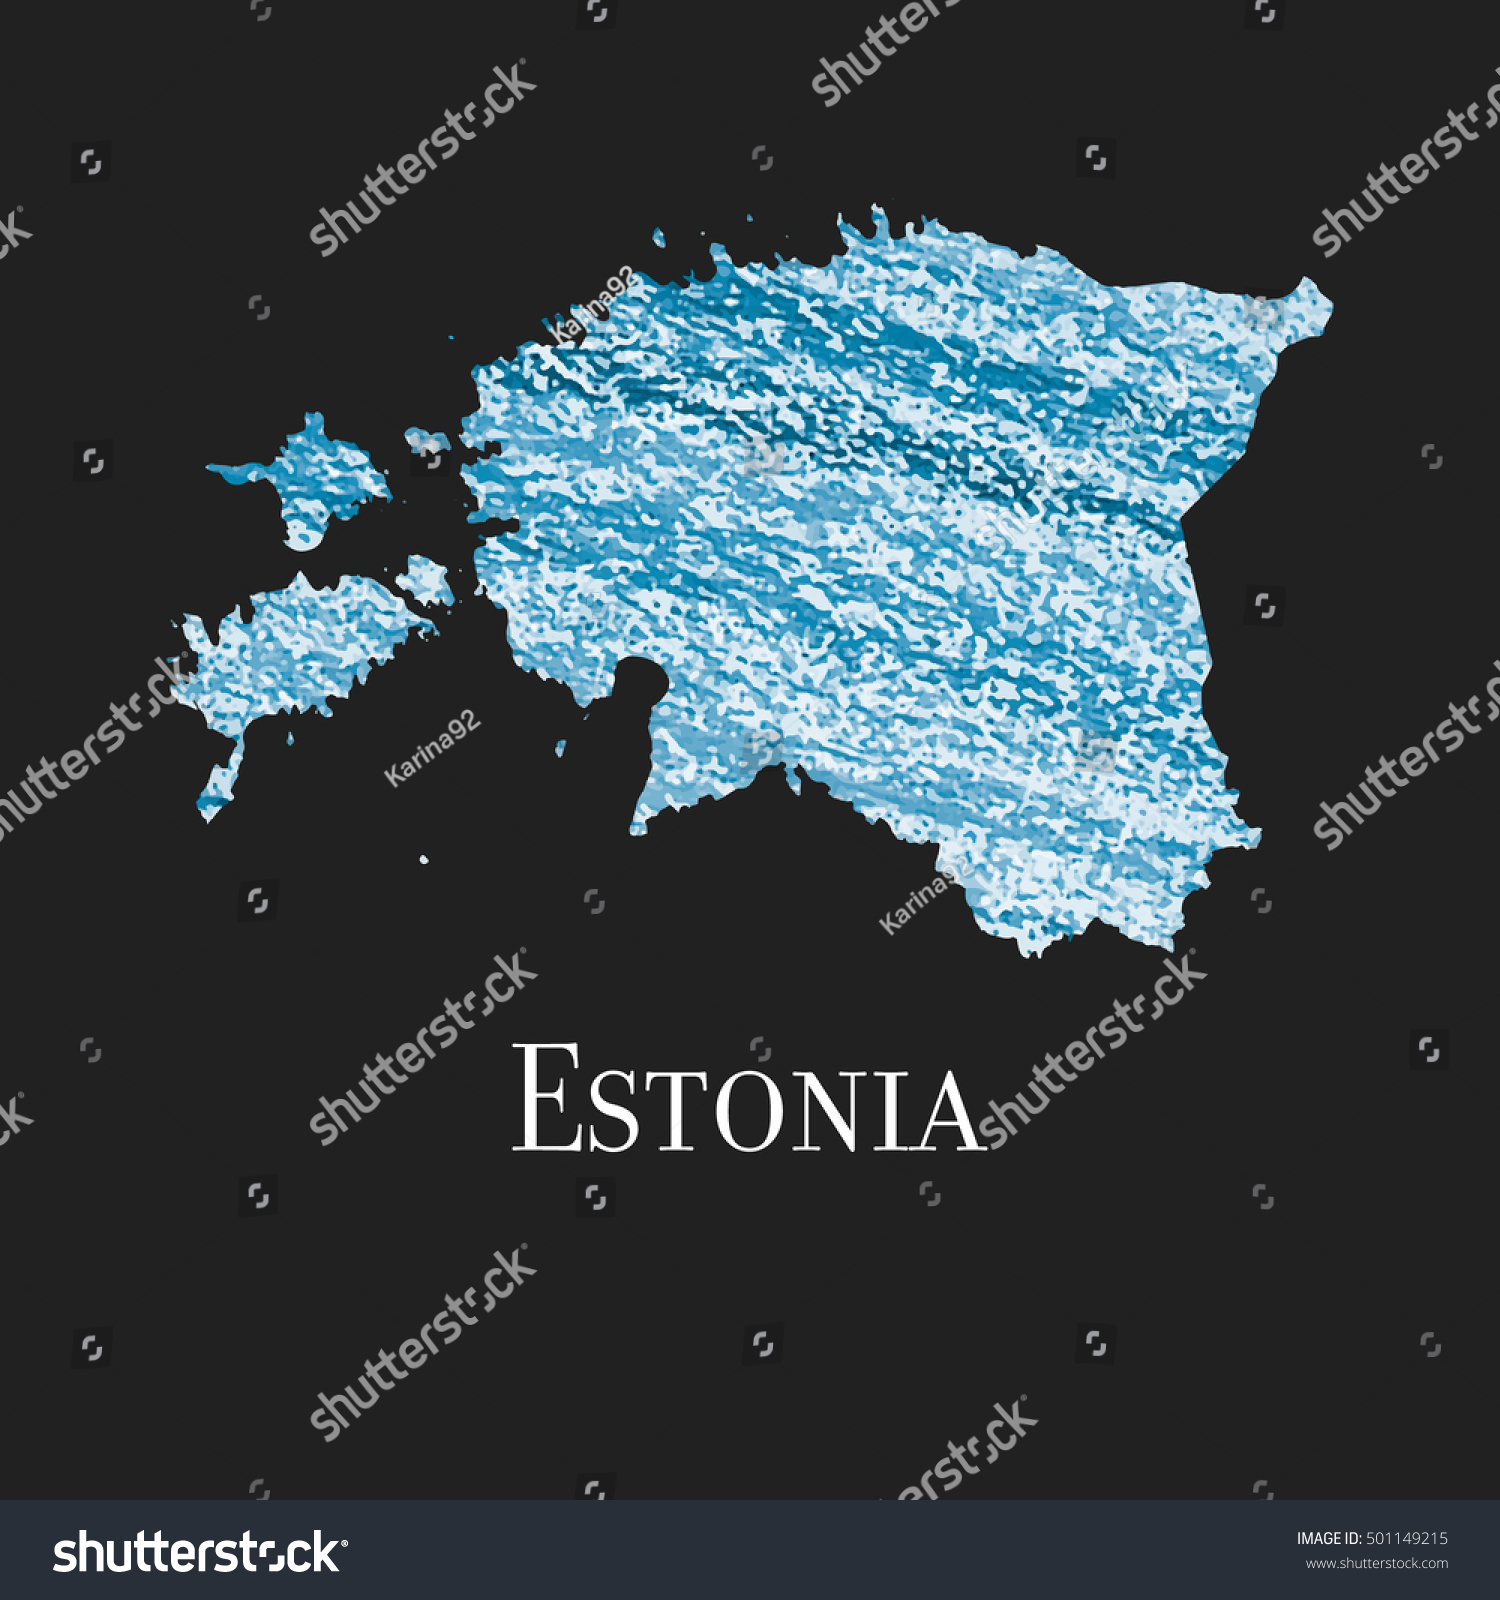 Map country estonia illustration estonia colored stock photo photo a map of the country of estonia illustration of estonia colored map vector illustration gumiabroncs Gallery